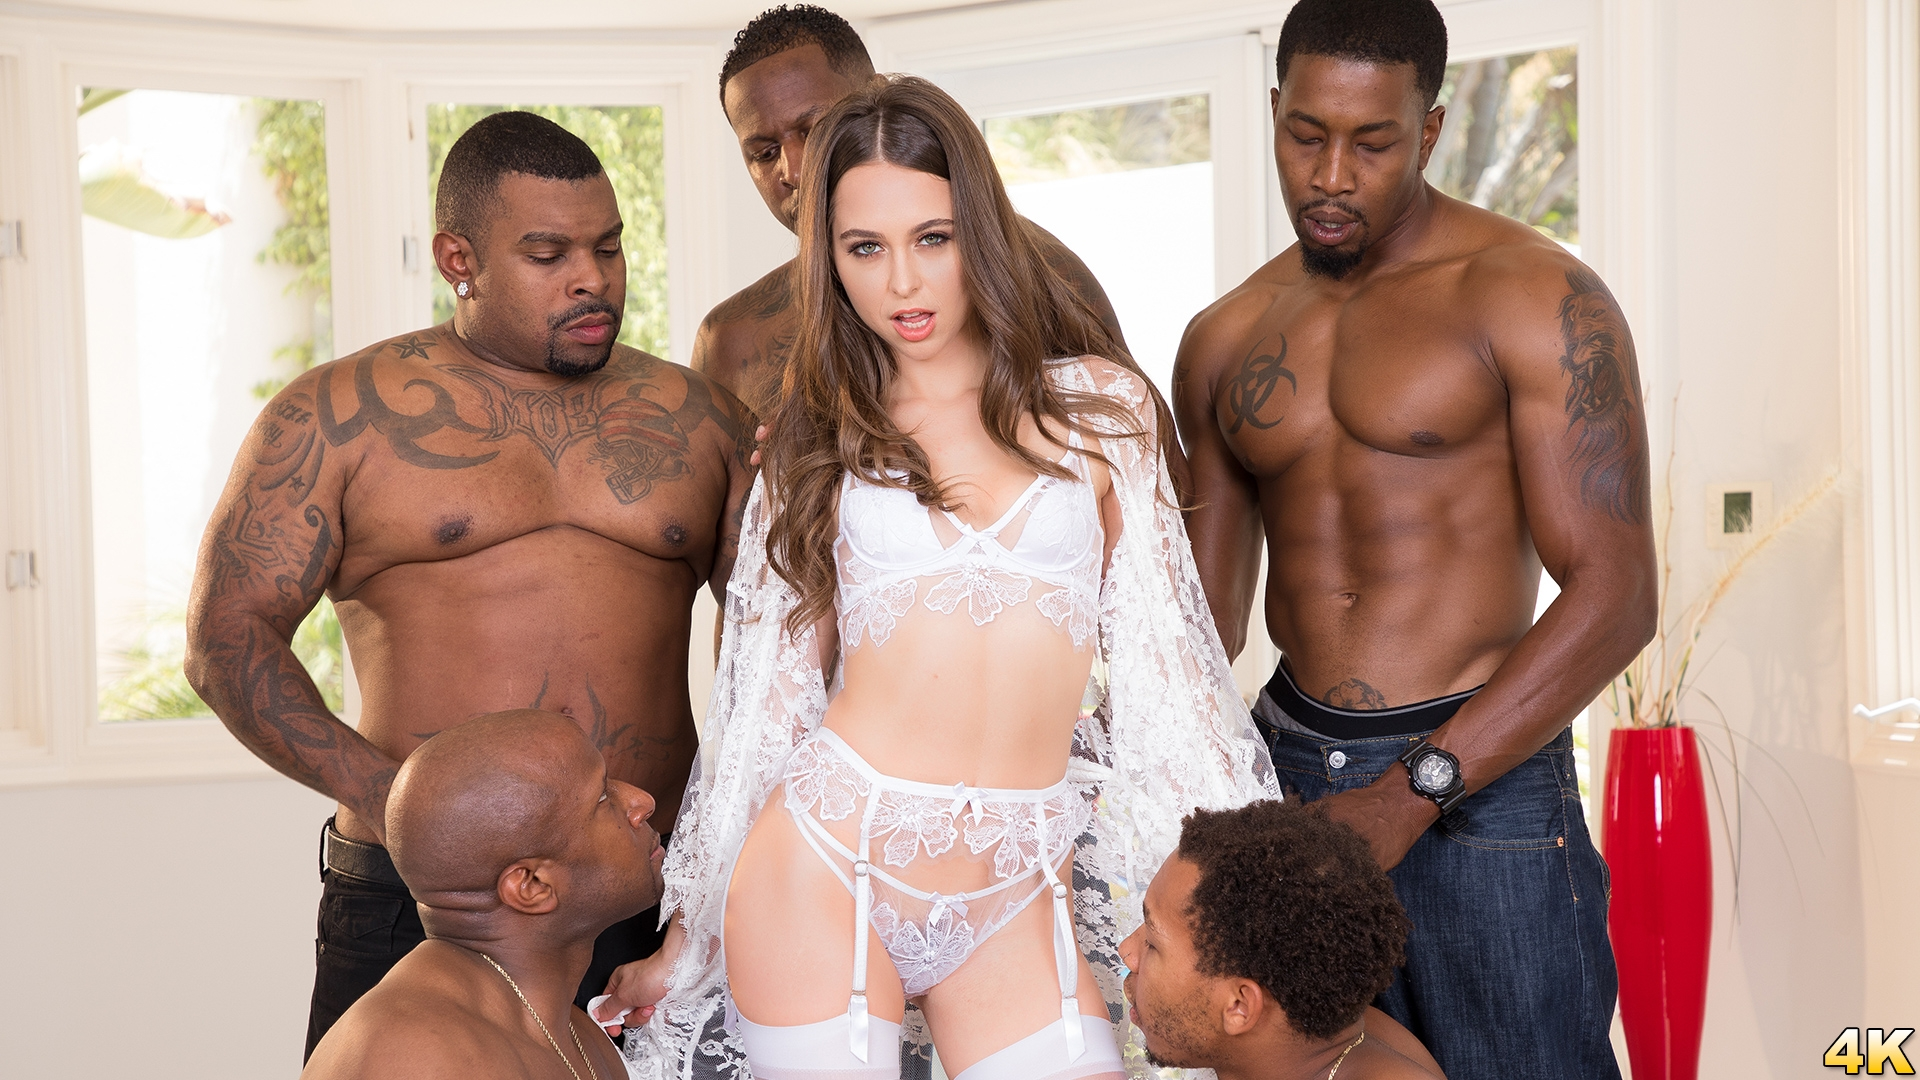 Riley Reid in Riley Reid Interracial Gangbang! No Holes Barred! Where Will All Those Big Black Cocks Go?